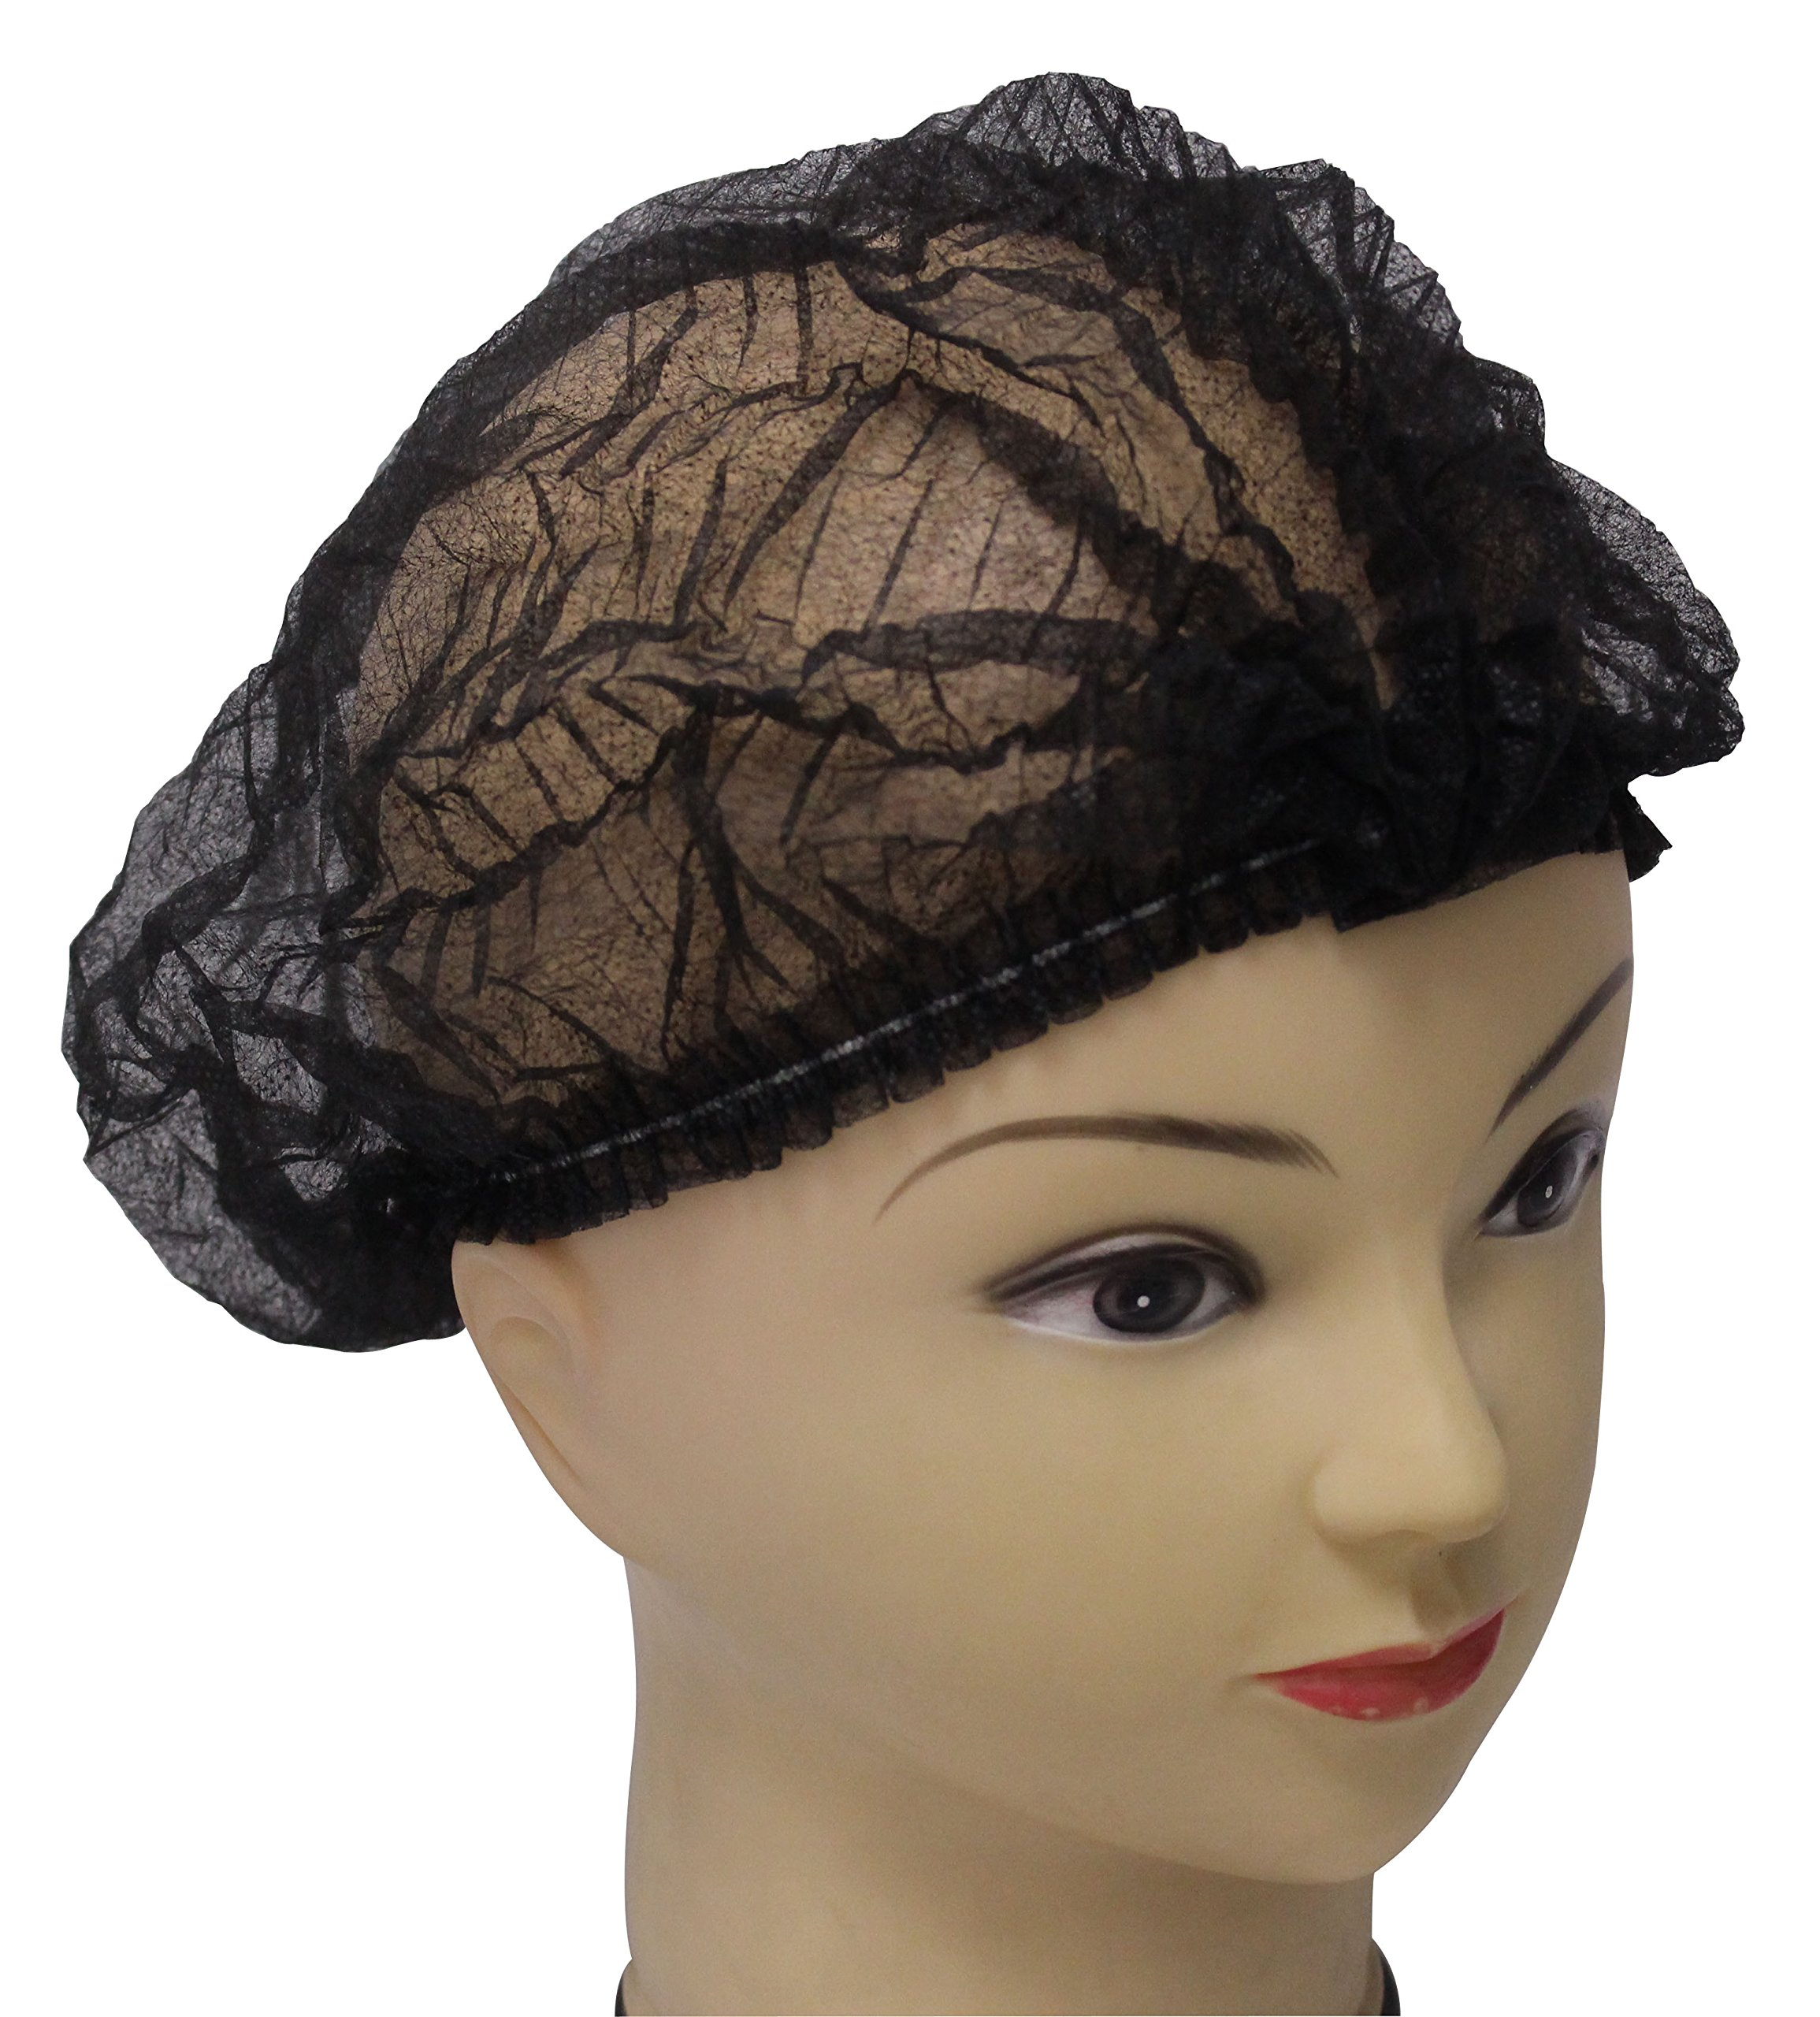 100 pieces disposable Non-woven Clip Caps Mob caps hairnets head cover, 21'', with 6 colors for you to choose. (Black)